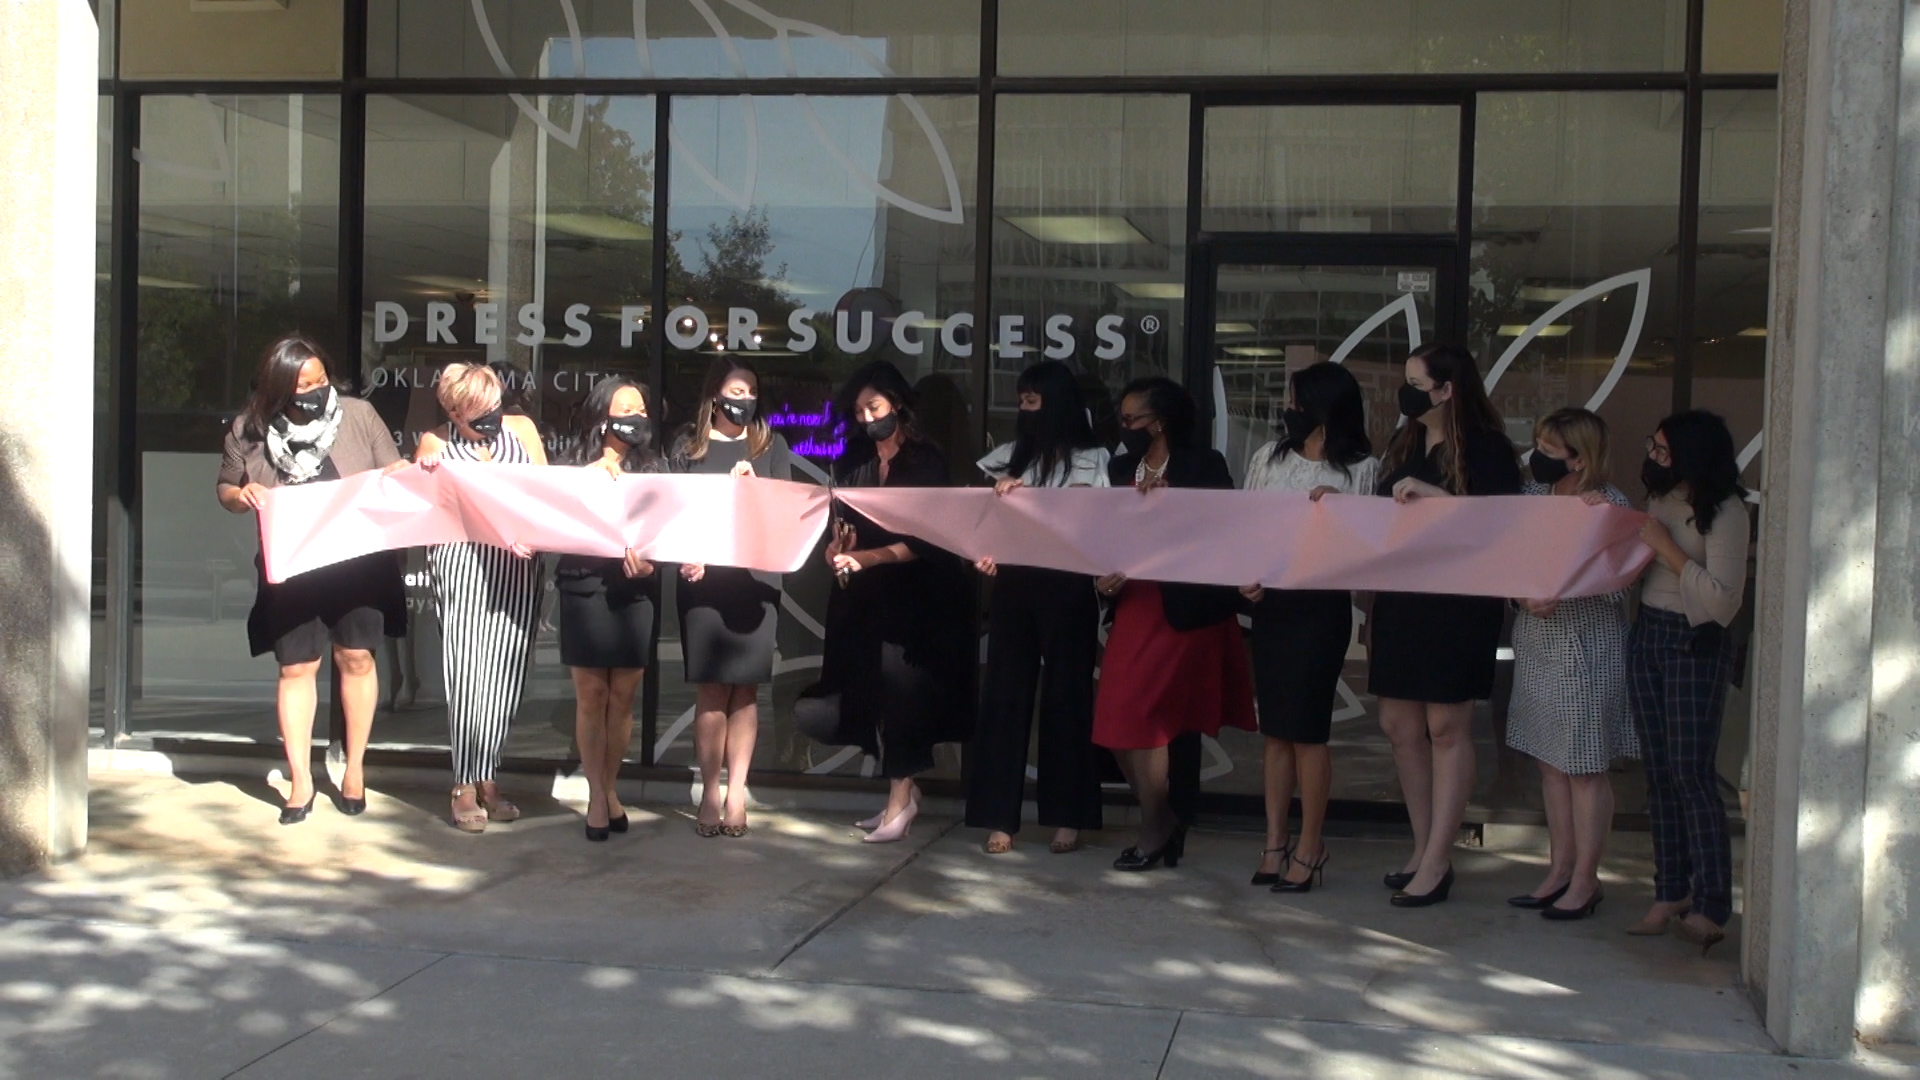 Dress for Success ribbon cutting